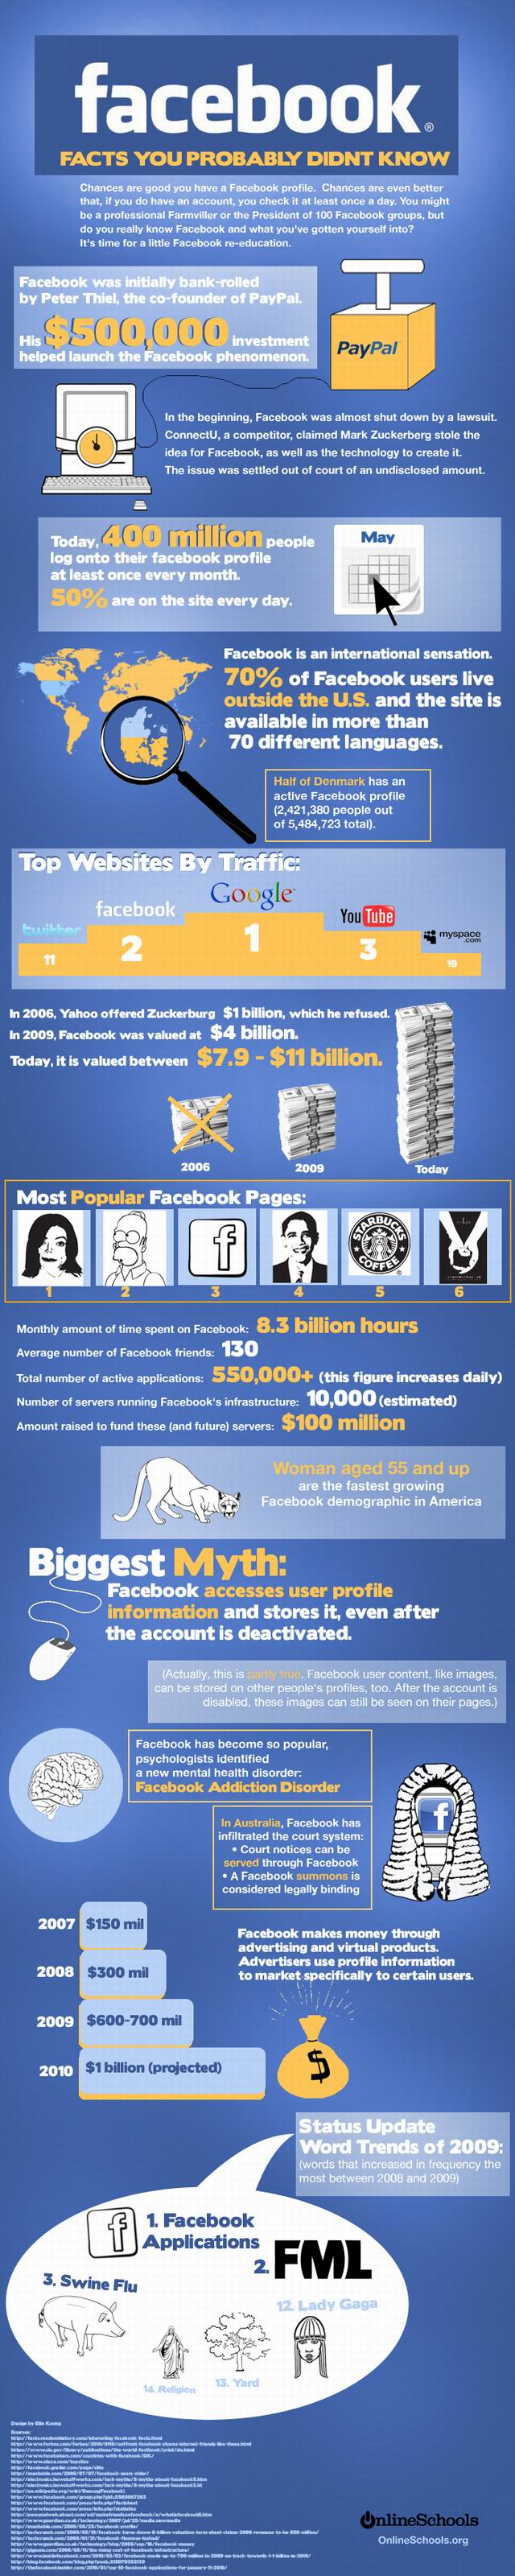 Some Interesting Facebook Facts you may not know about